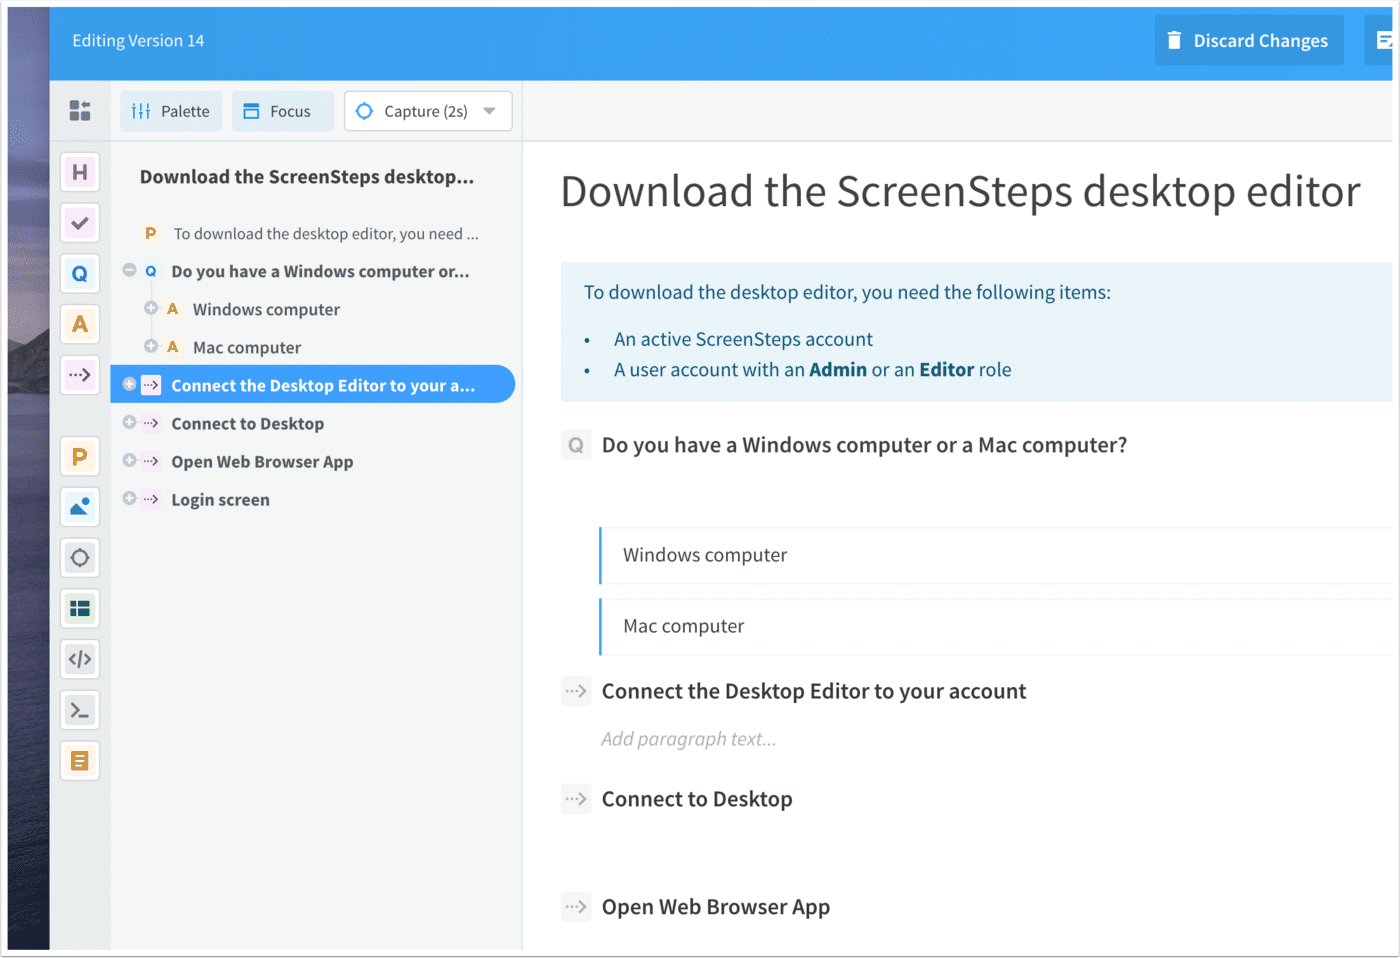 download-the-screensteps-desktop-editor